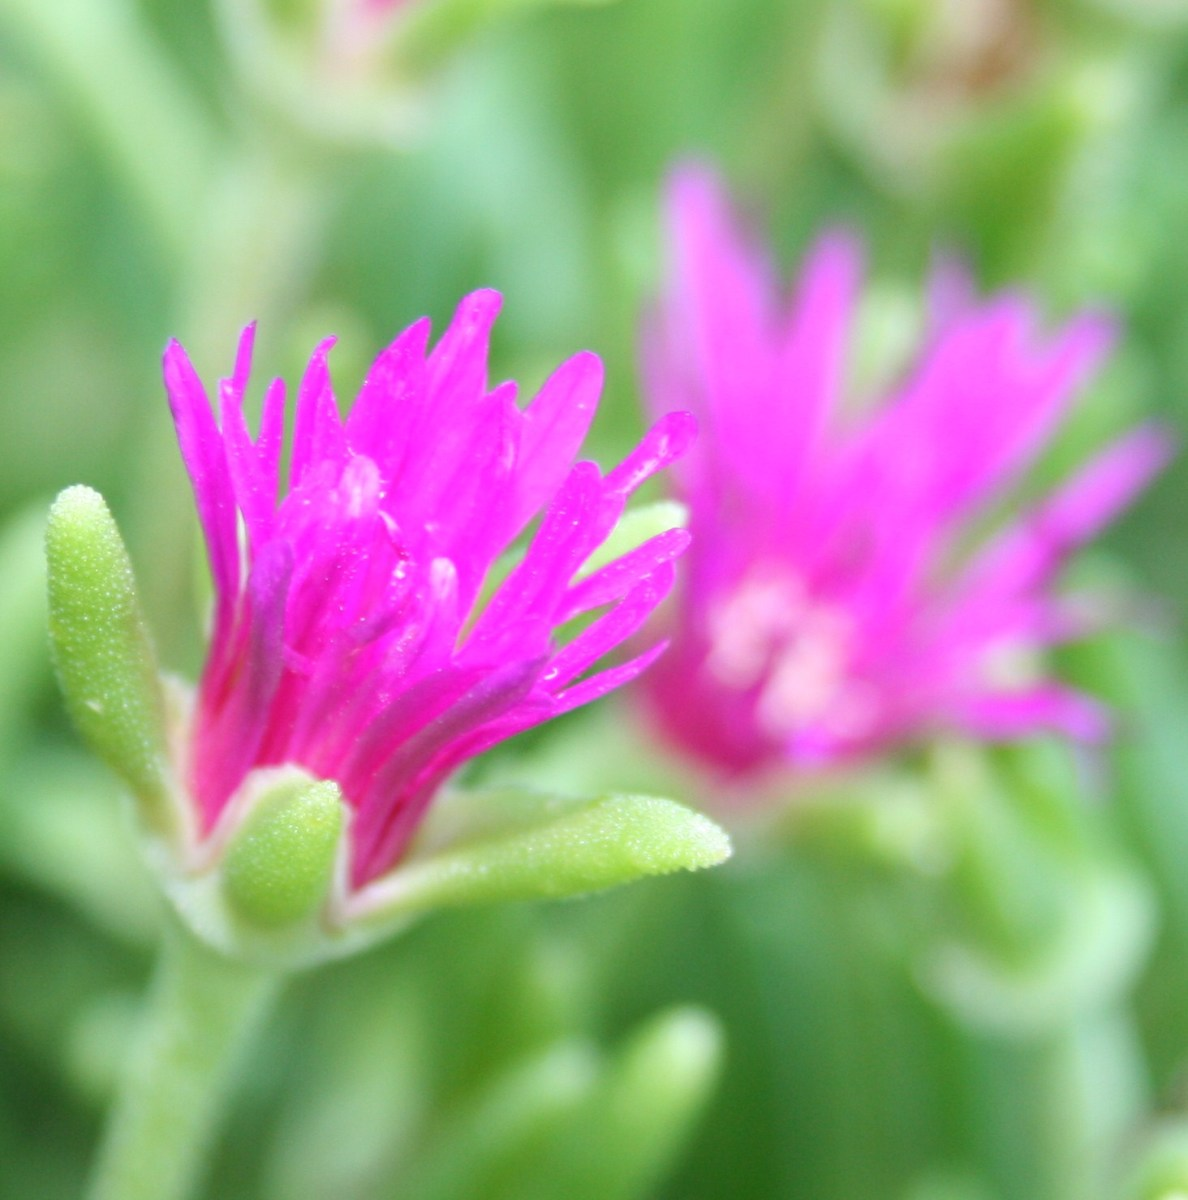 The flowers on the hardy purple ice plant open as the sun rises.